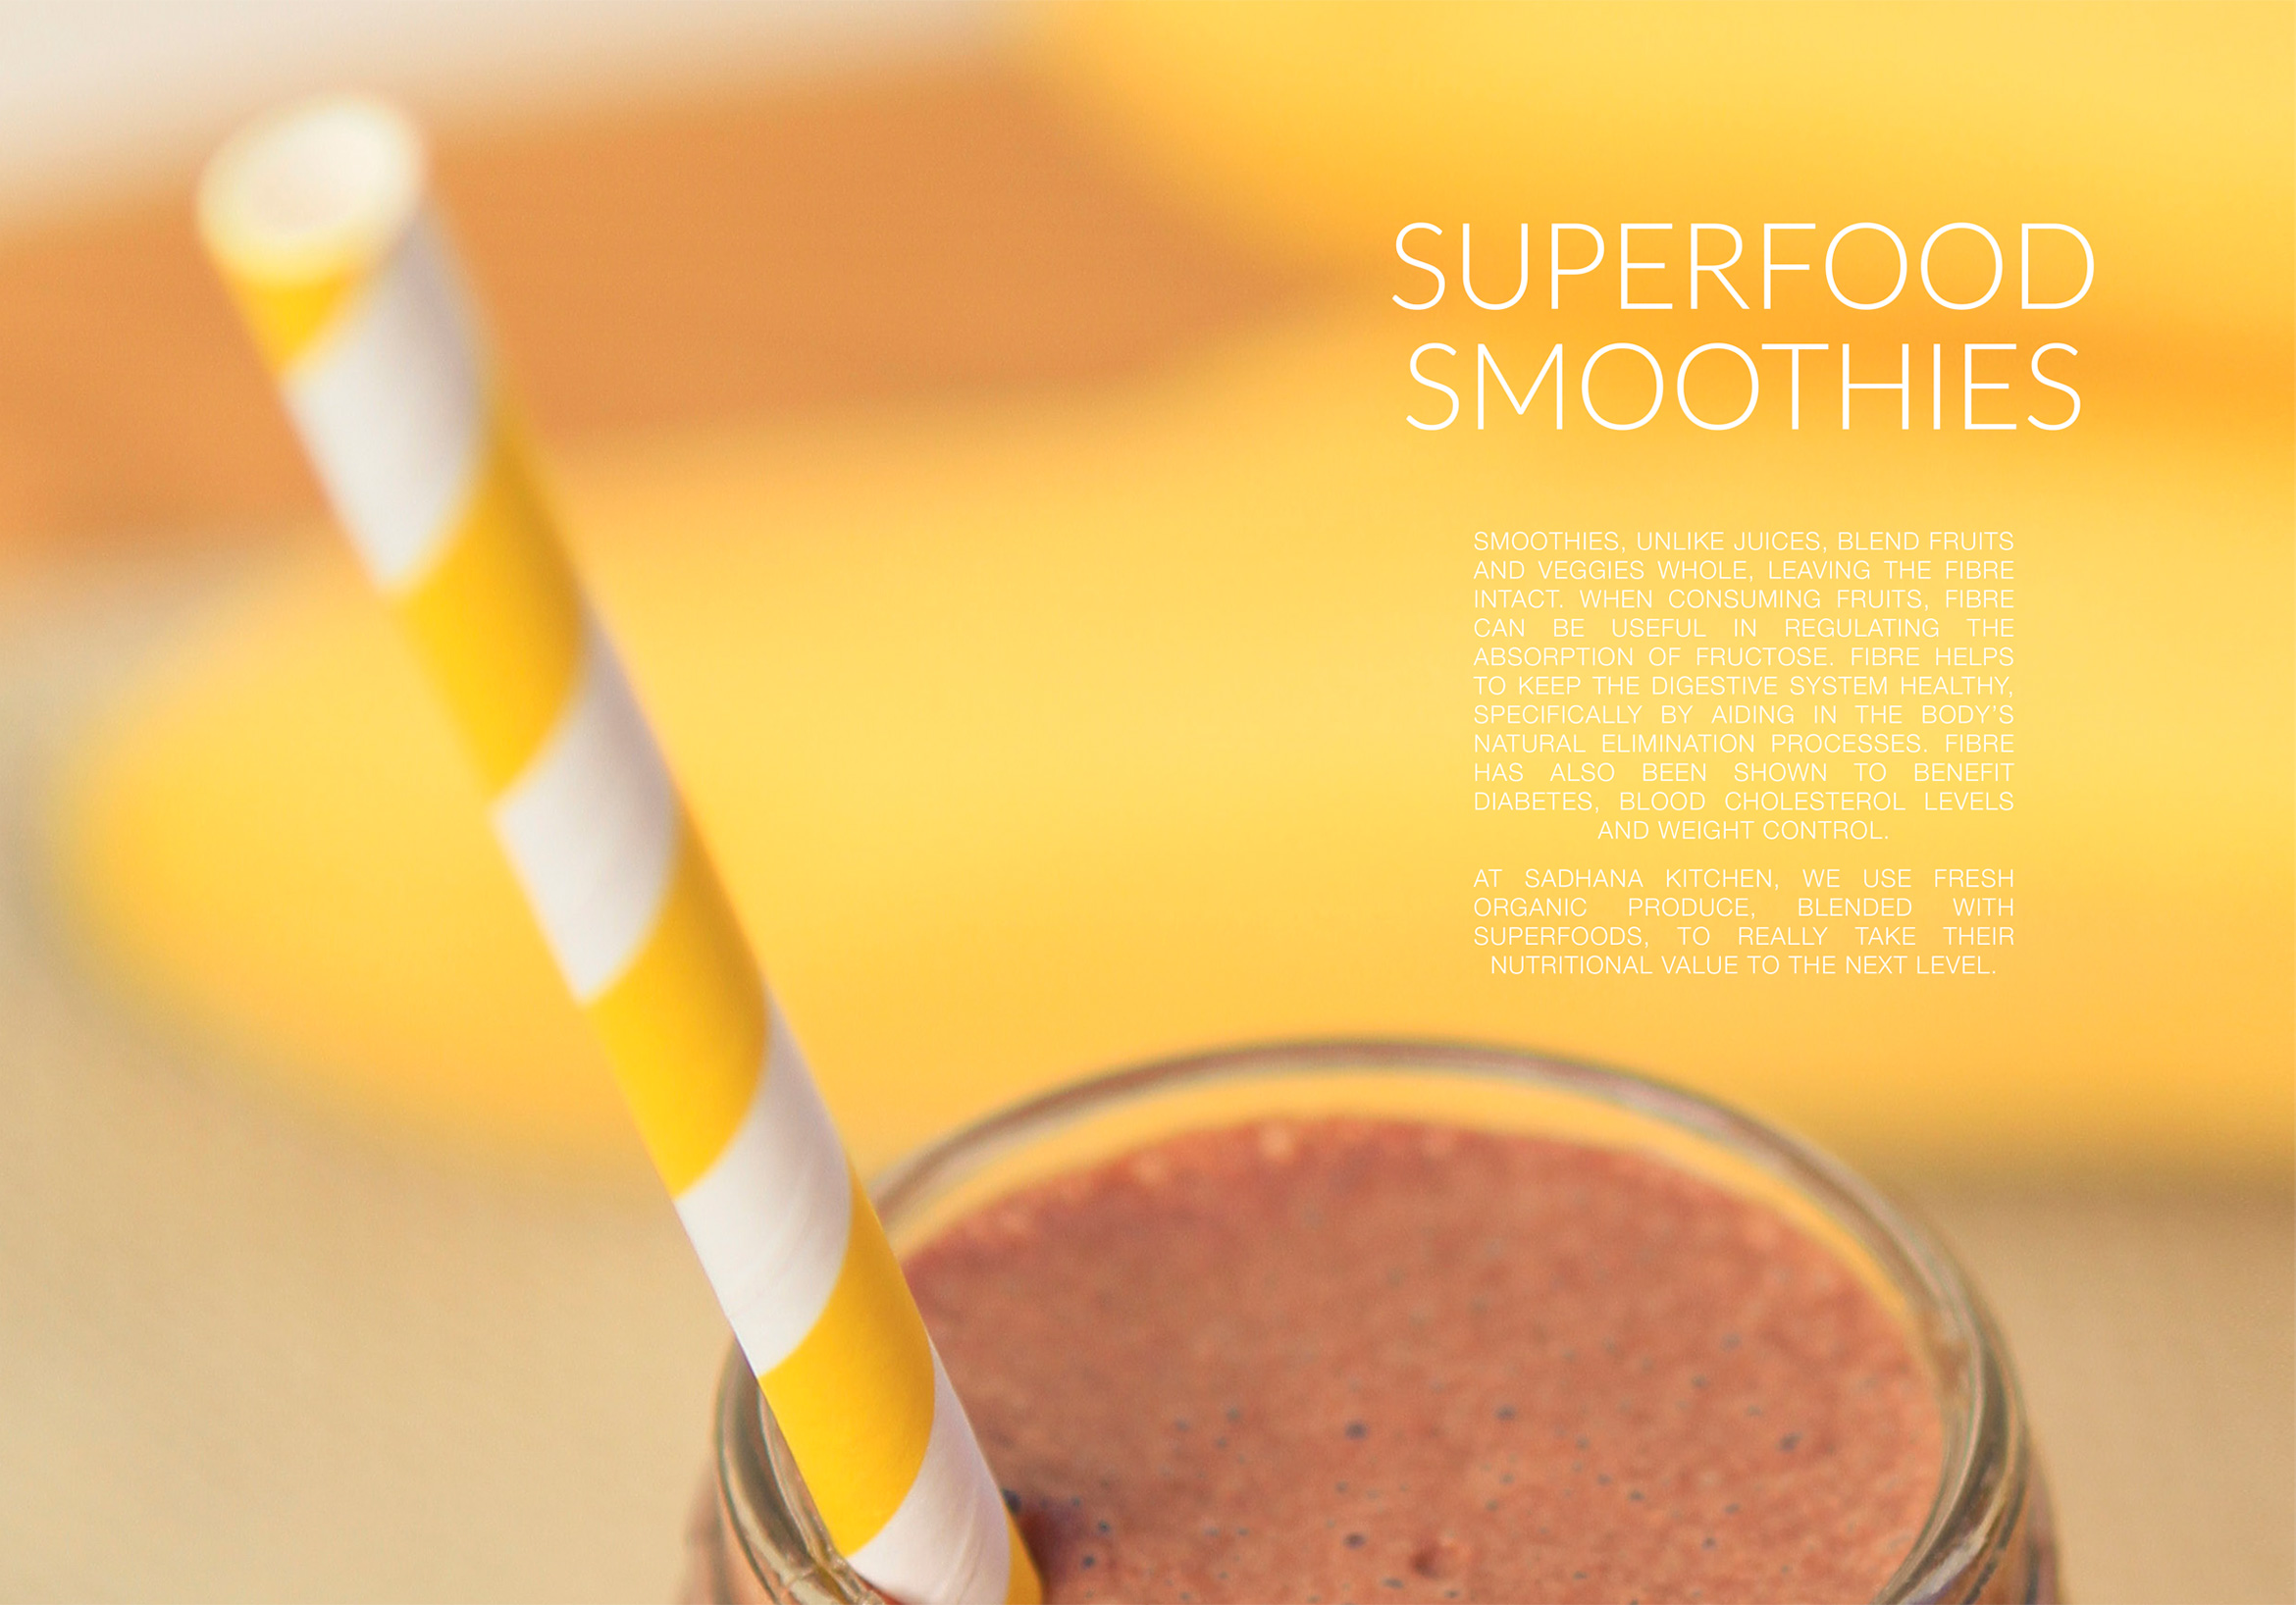 superfood-smoothie-sadhana-kitchen-maz-valcorza